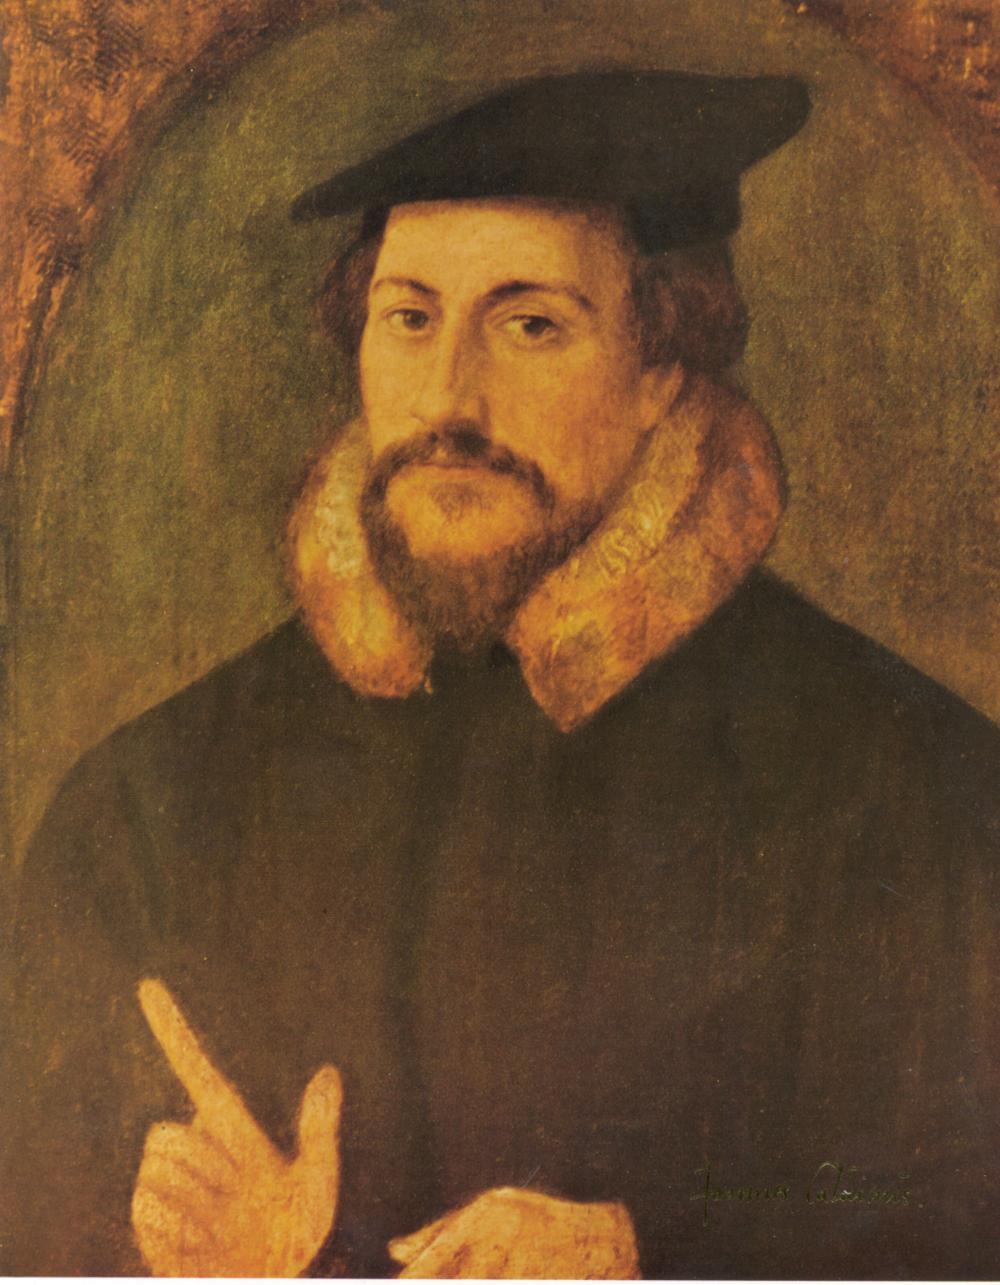 """John Calvin"" - Believed to be authored by Hans Holbein c. 1540 - Heckman Digital Archive."